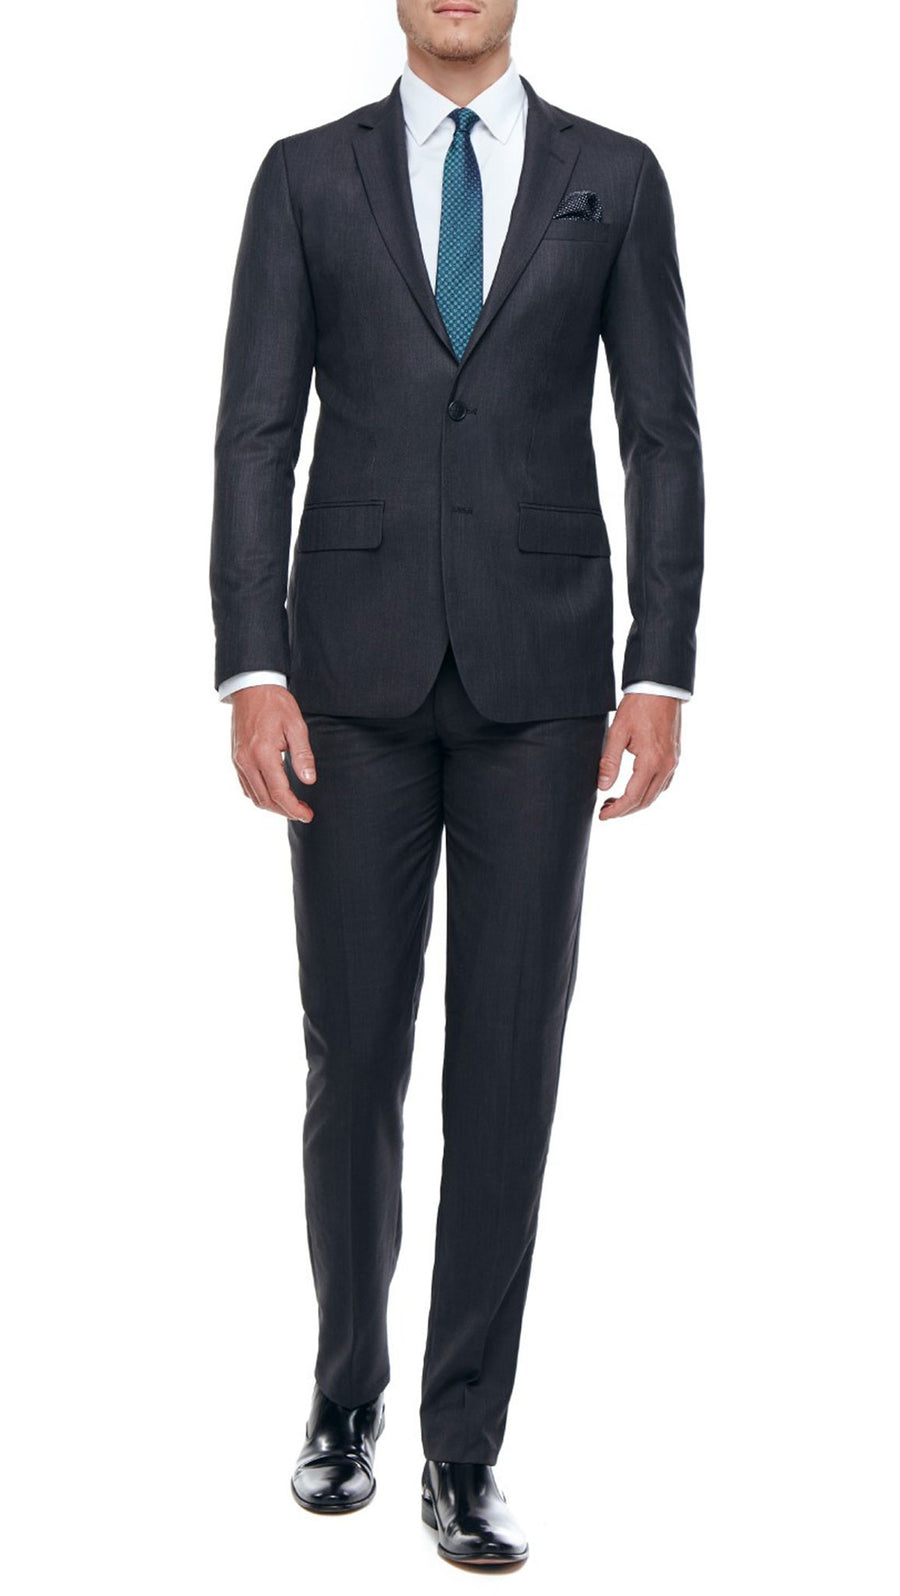 Marcellotino Slim Fit Suit in Charcoal.